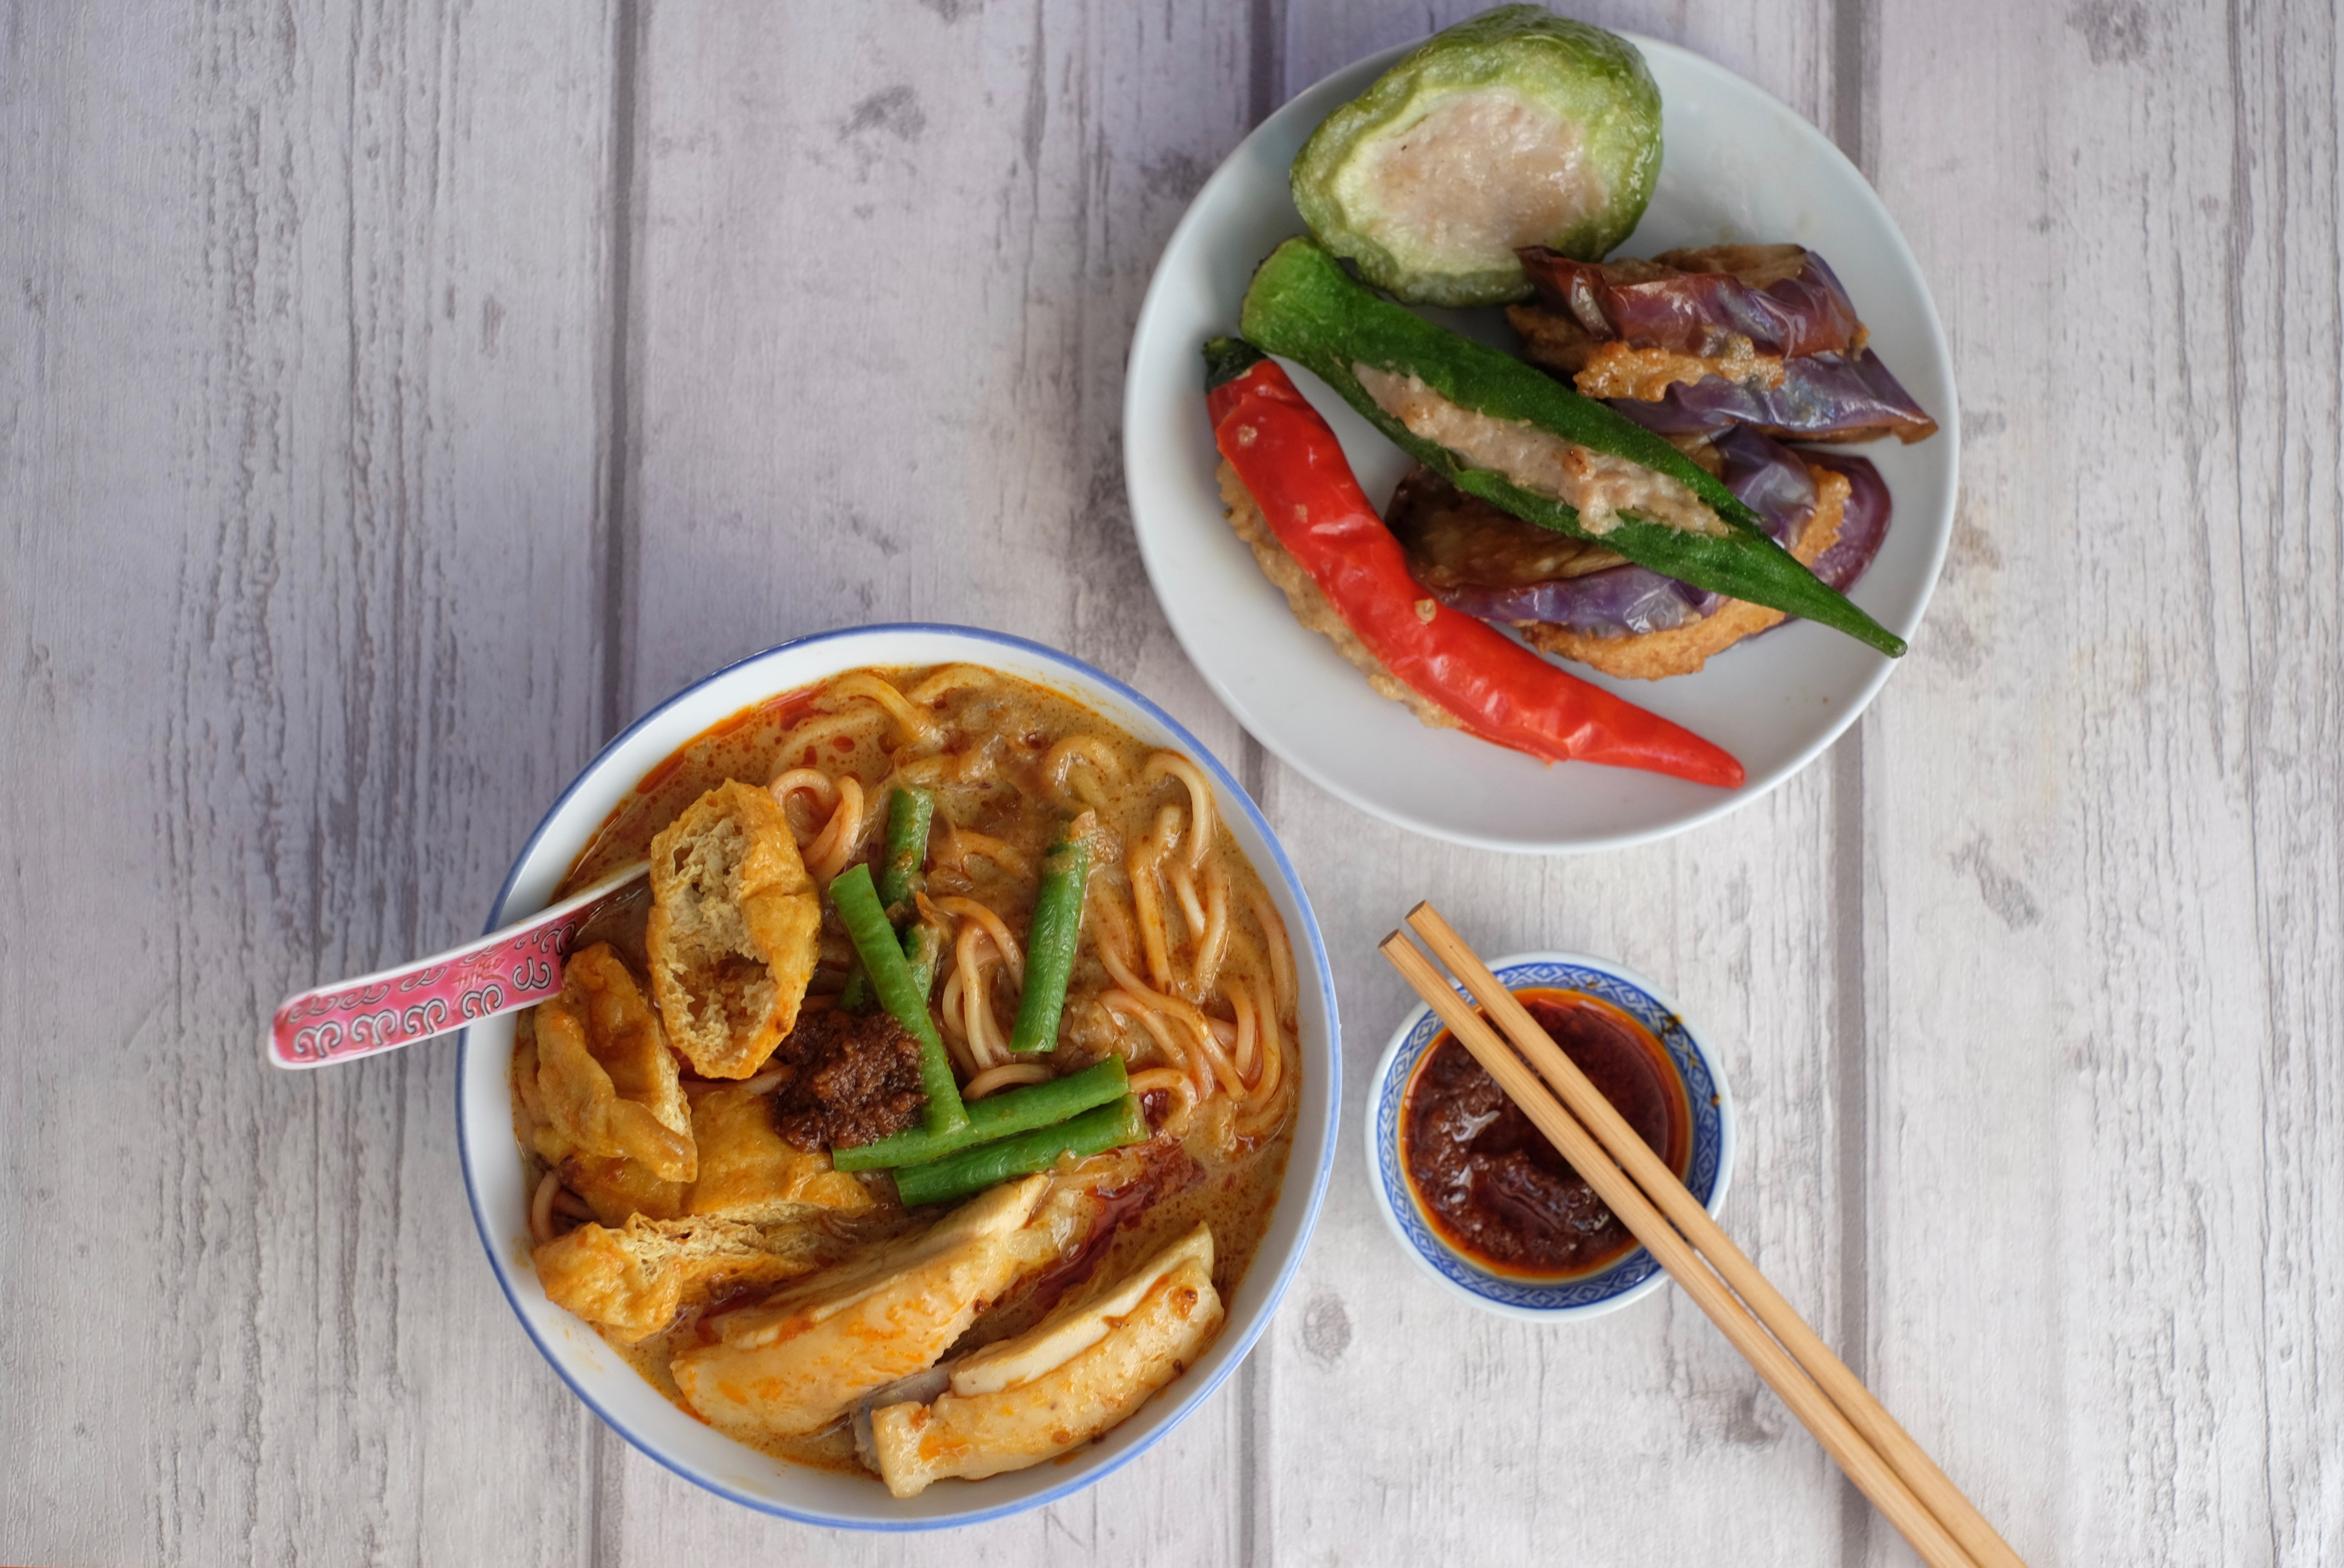 Enjoy a traditional Malaysian meal with a local family